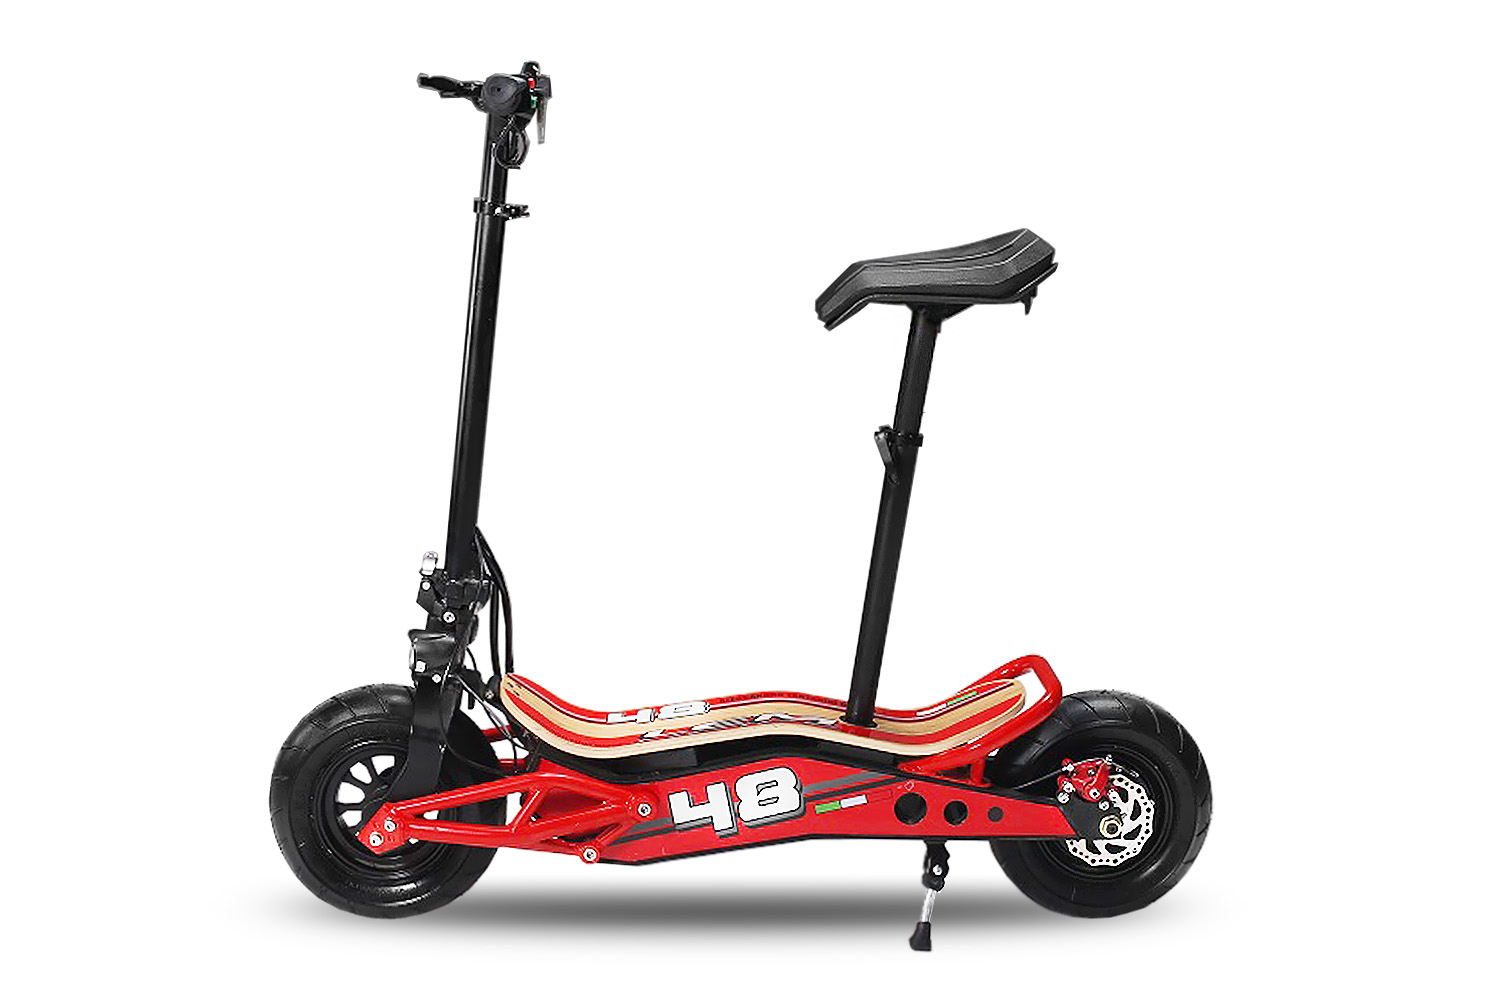 800w 36v minimad 800 elektro scooter 6 5 zoll. Black Bedroom Furniture Sets. Home Design Ideas